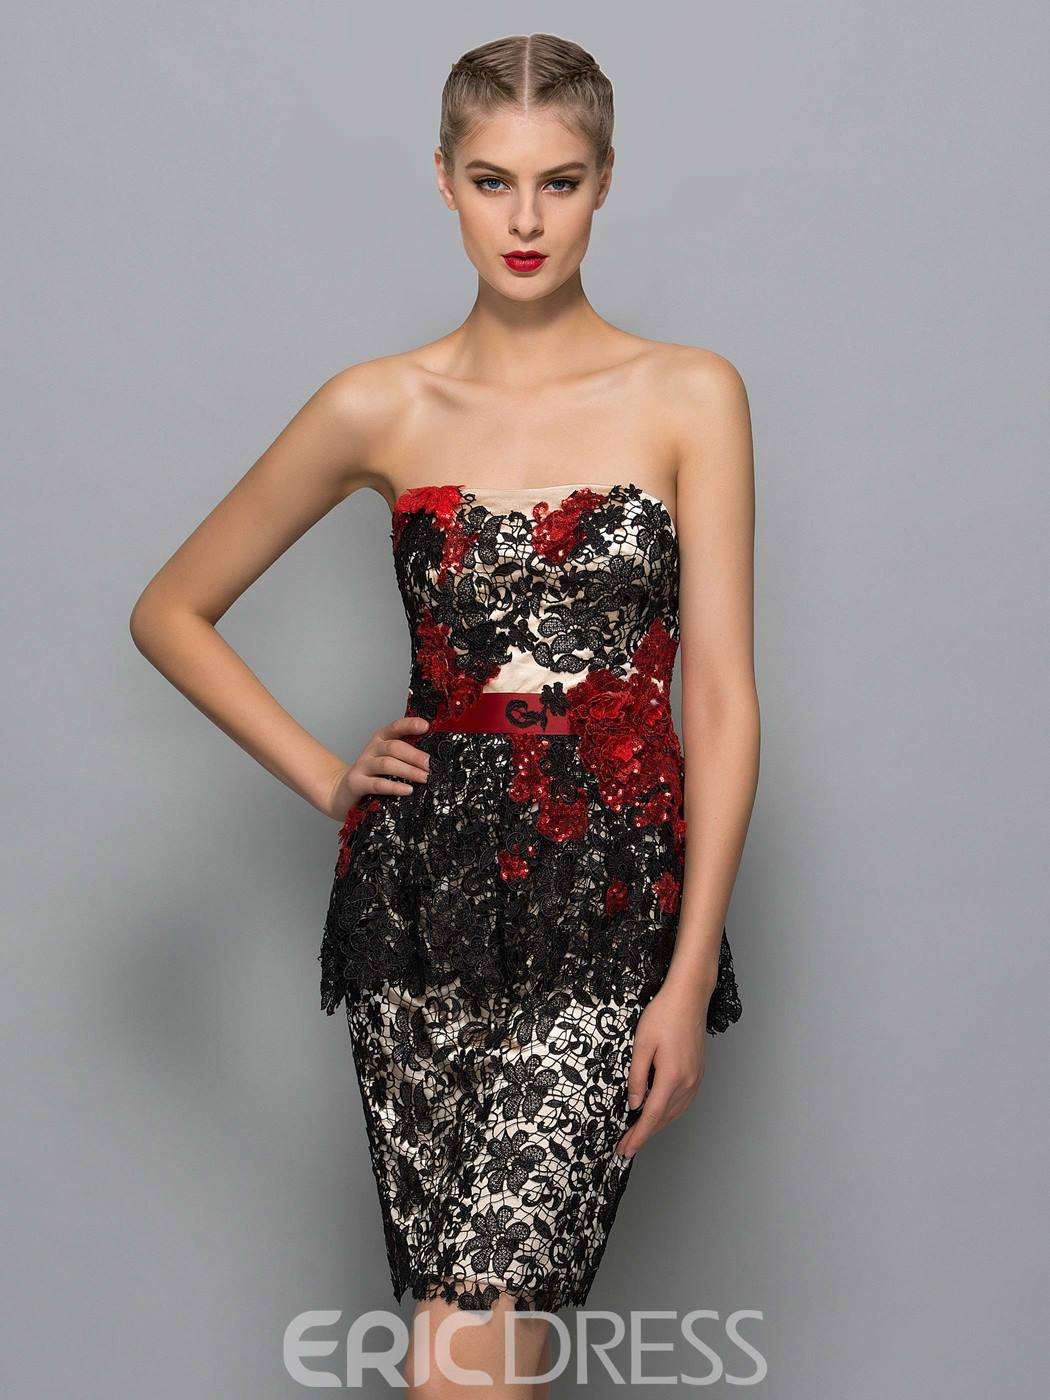 Ericdress Strapless Appliques Sequins Column Cocktail Dress